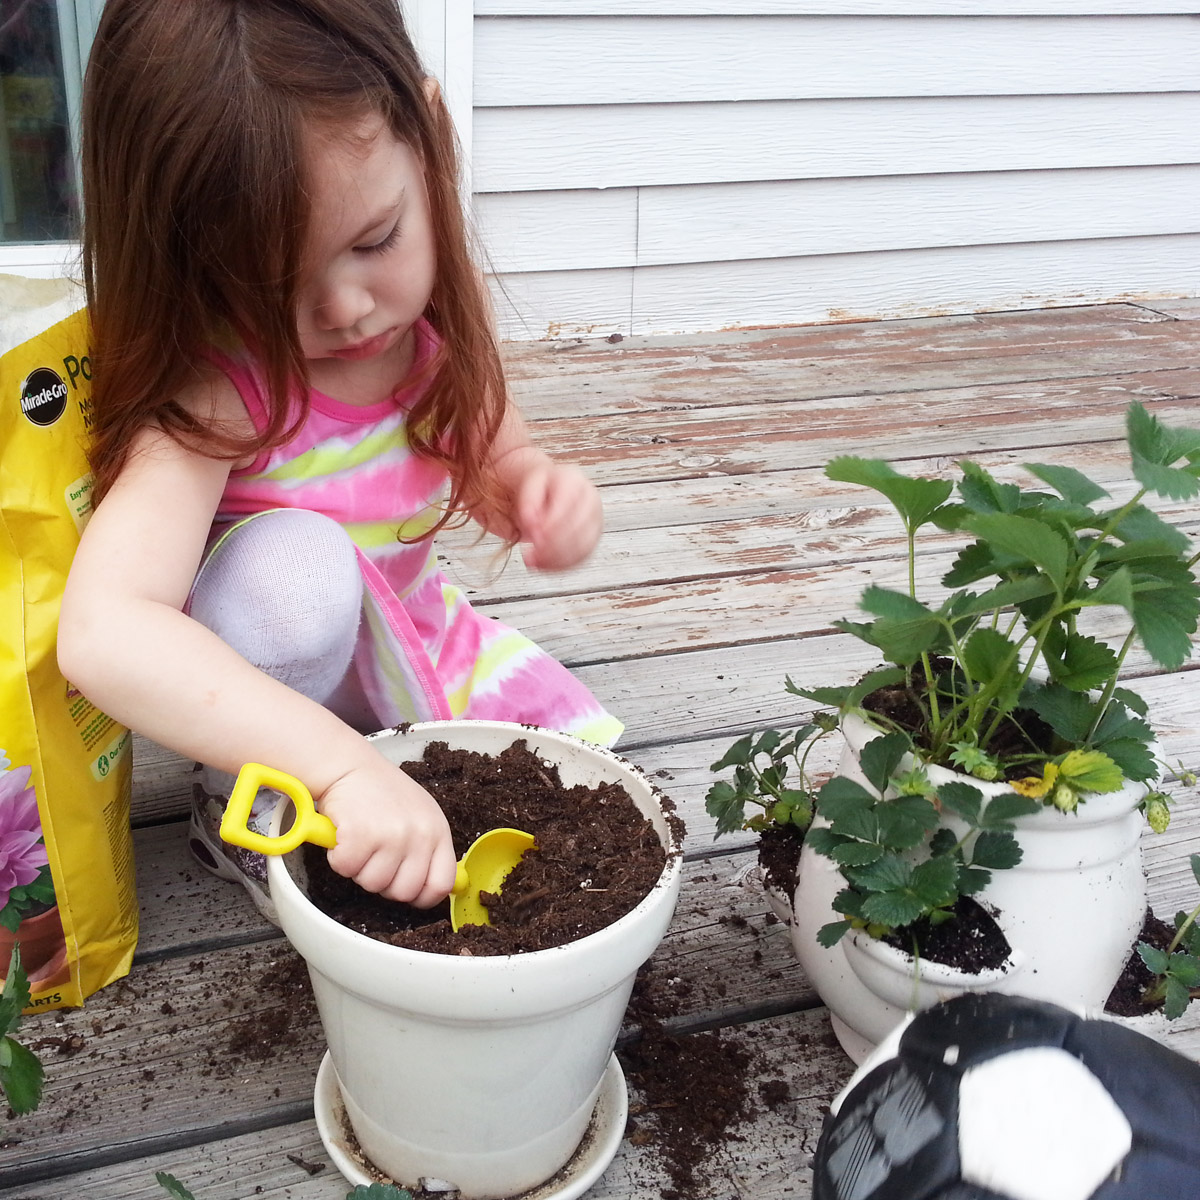 16 Epic Benefits of Backyard Gardening as a Hobby